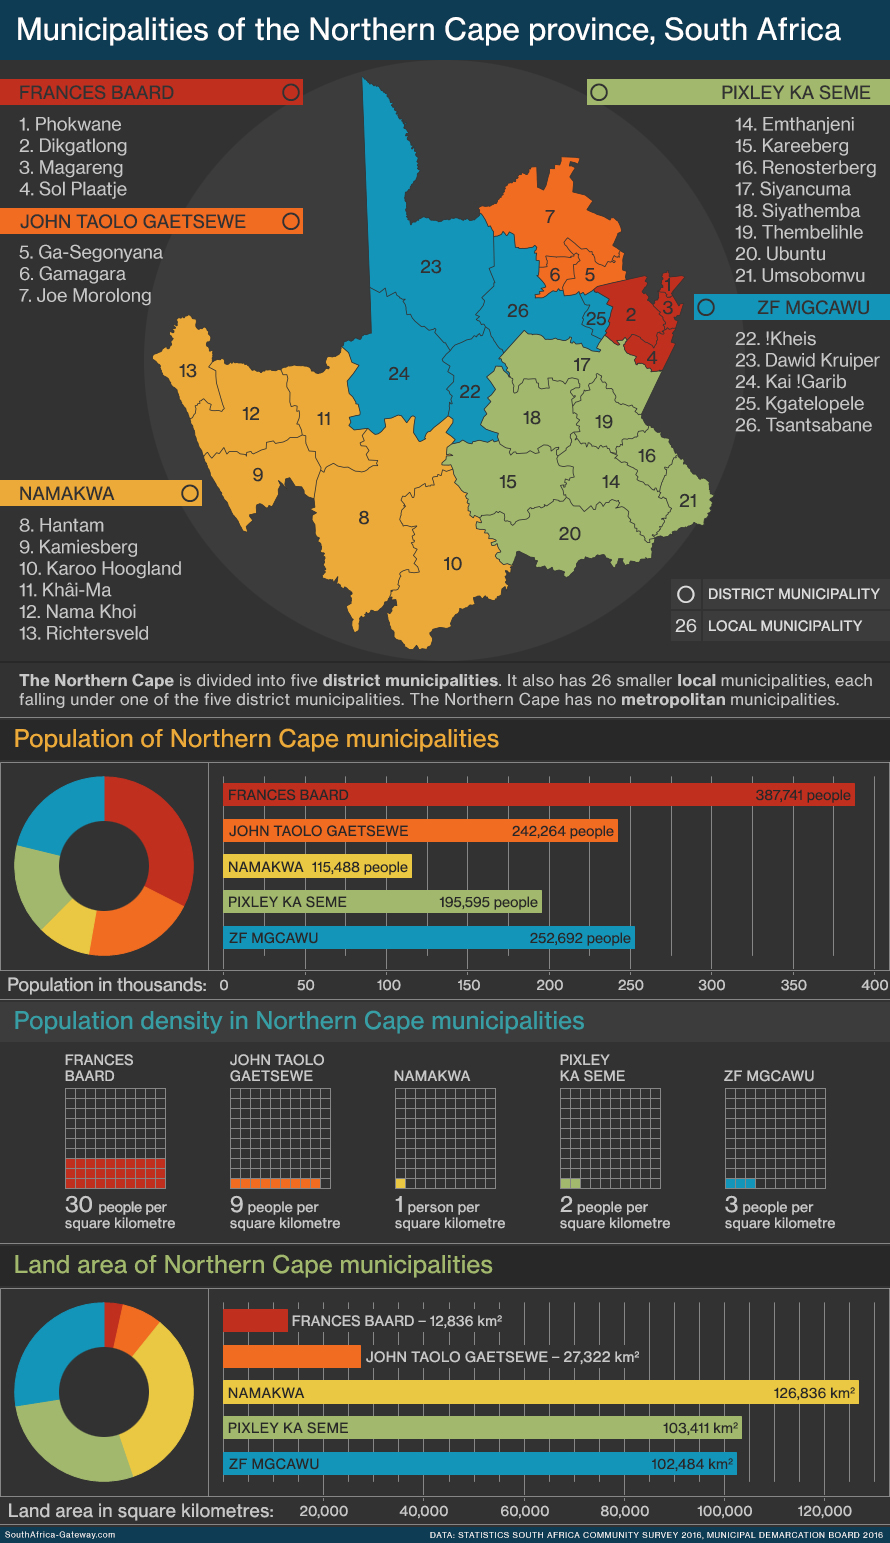 Infographic and map of the local government regions - known as municipalities - of the Northern Cape province of South Africa showing geography, population, land area and population density. The Northern Cape has five district municipalities and 26 local municipalities.